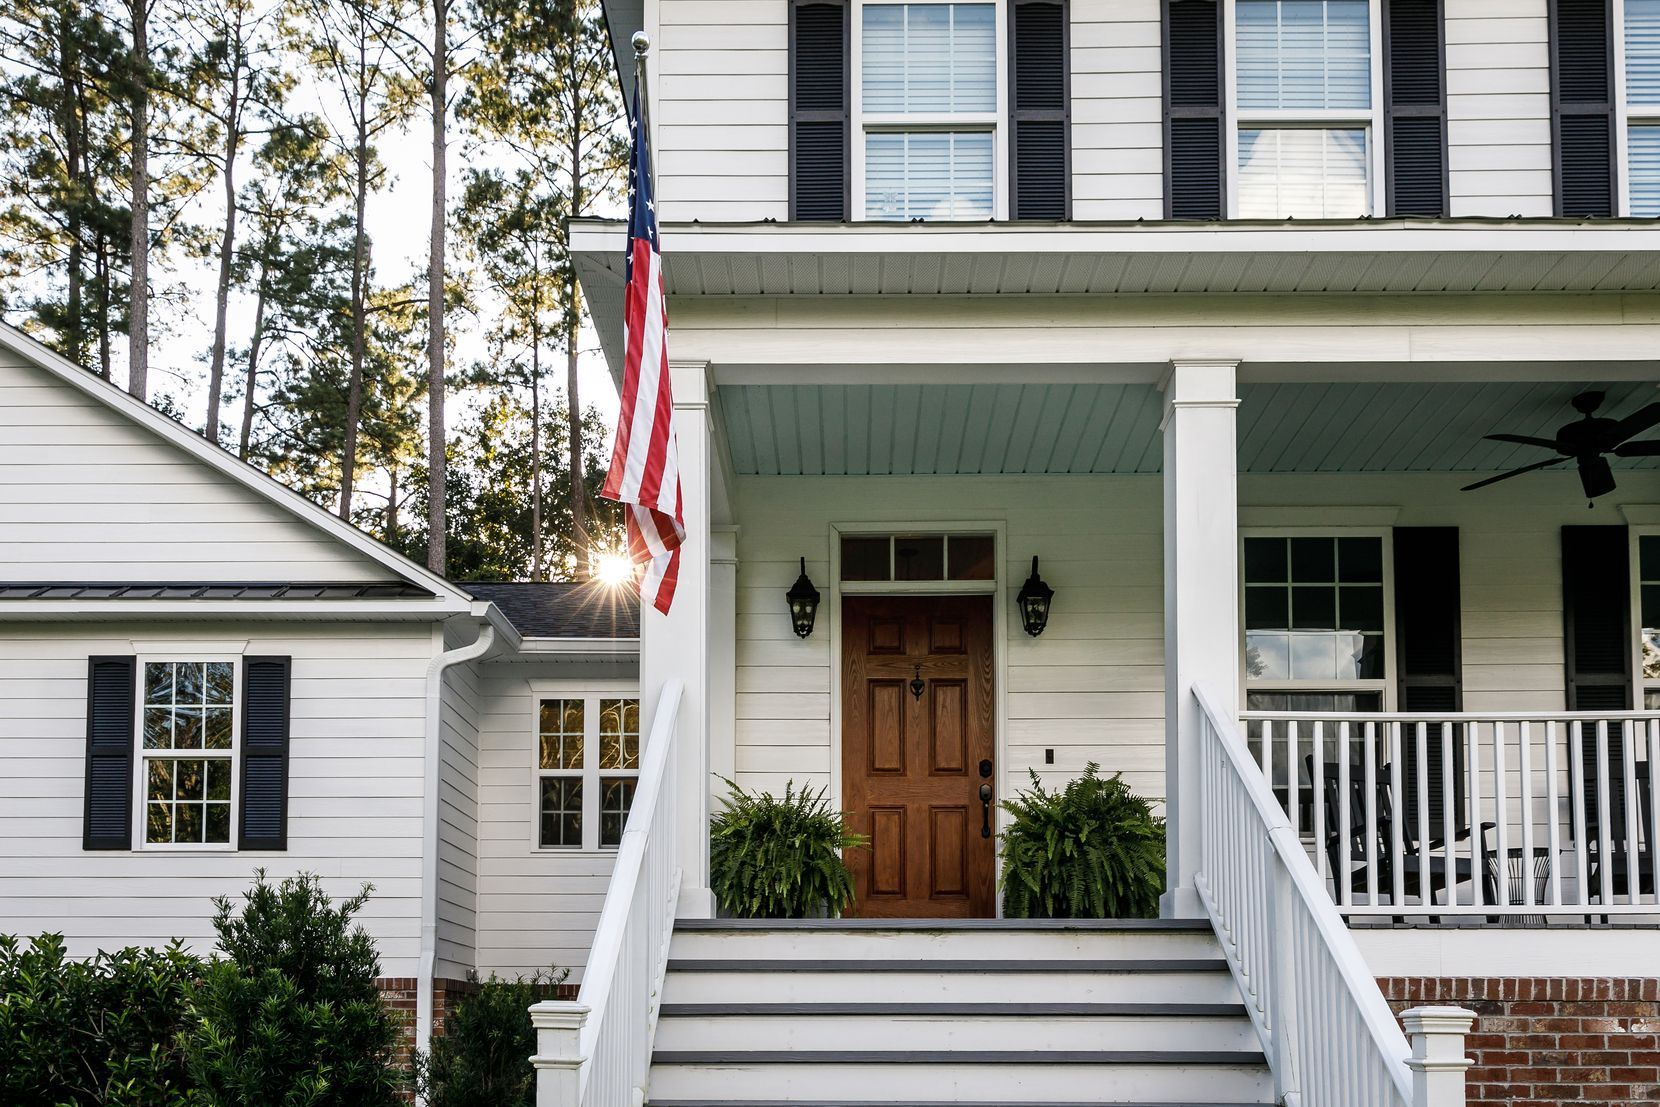 Real estate agents at Better are dedicated to making homeownership faster, simpler and cheaper.